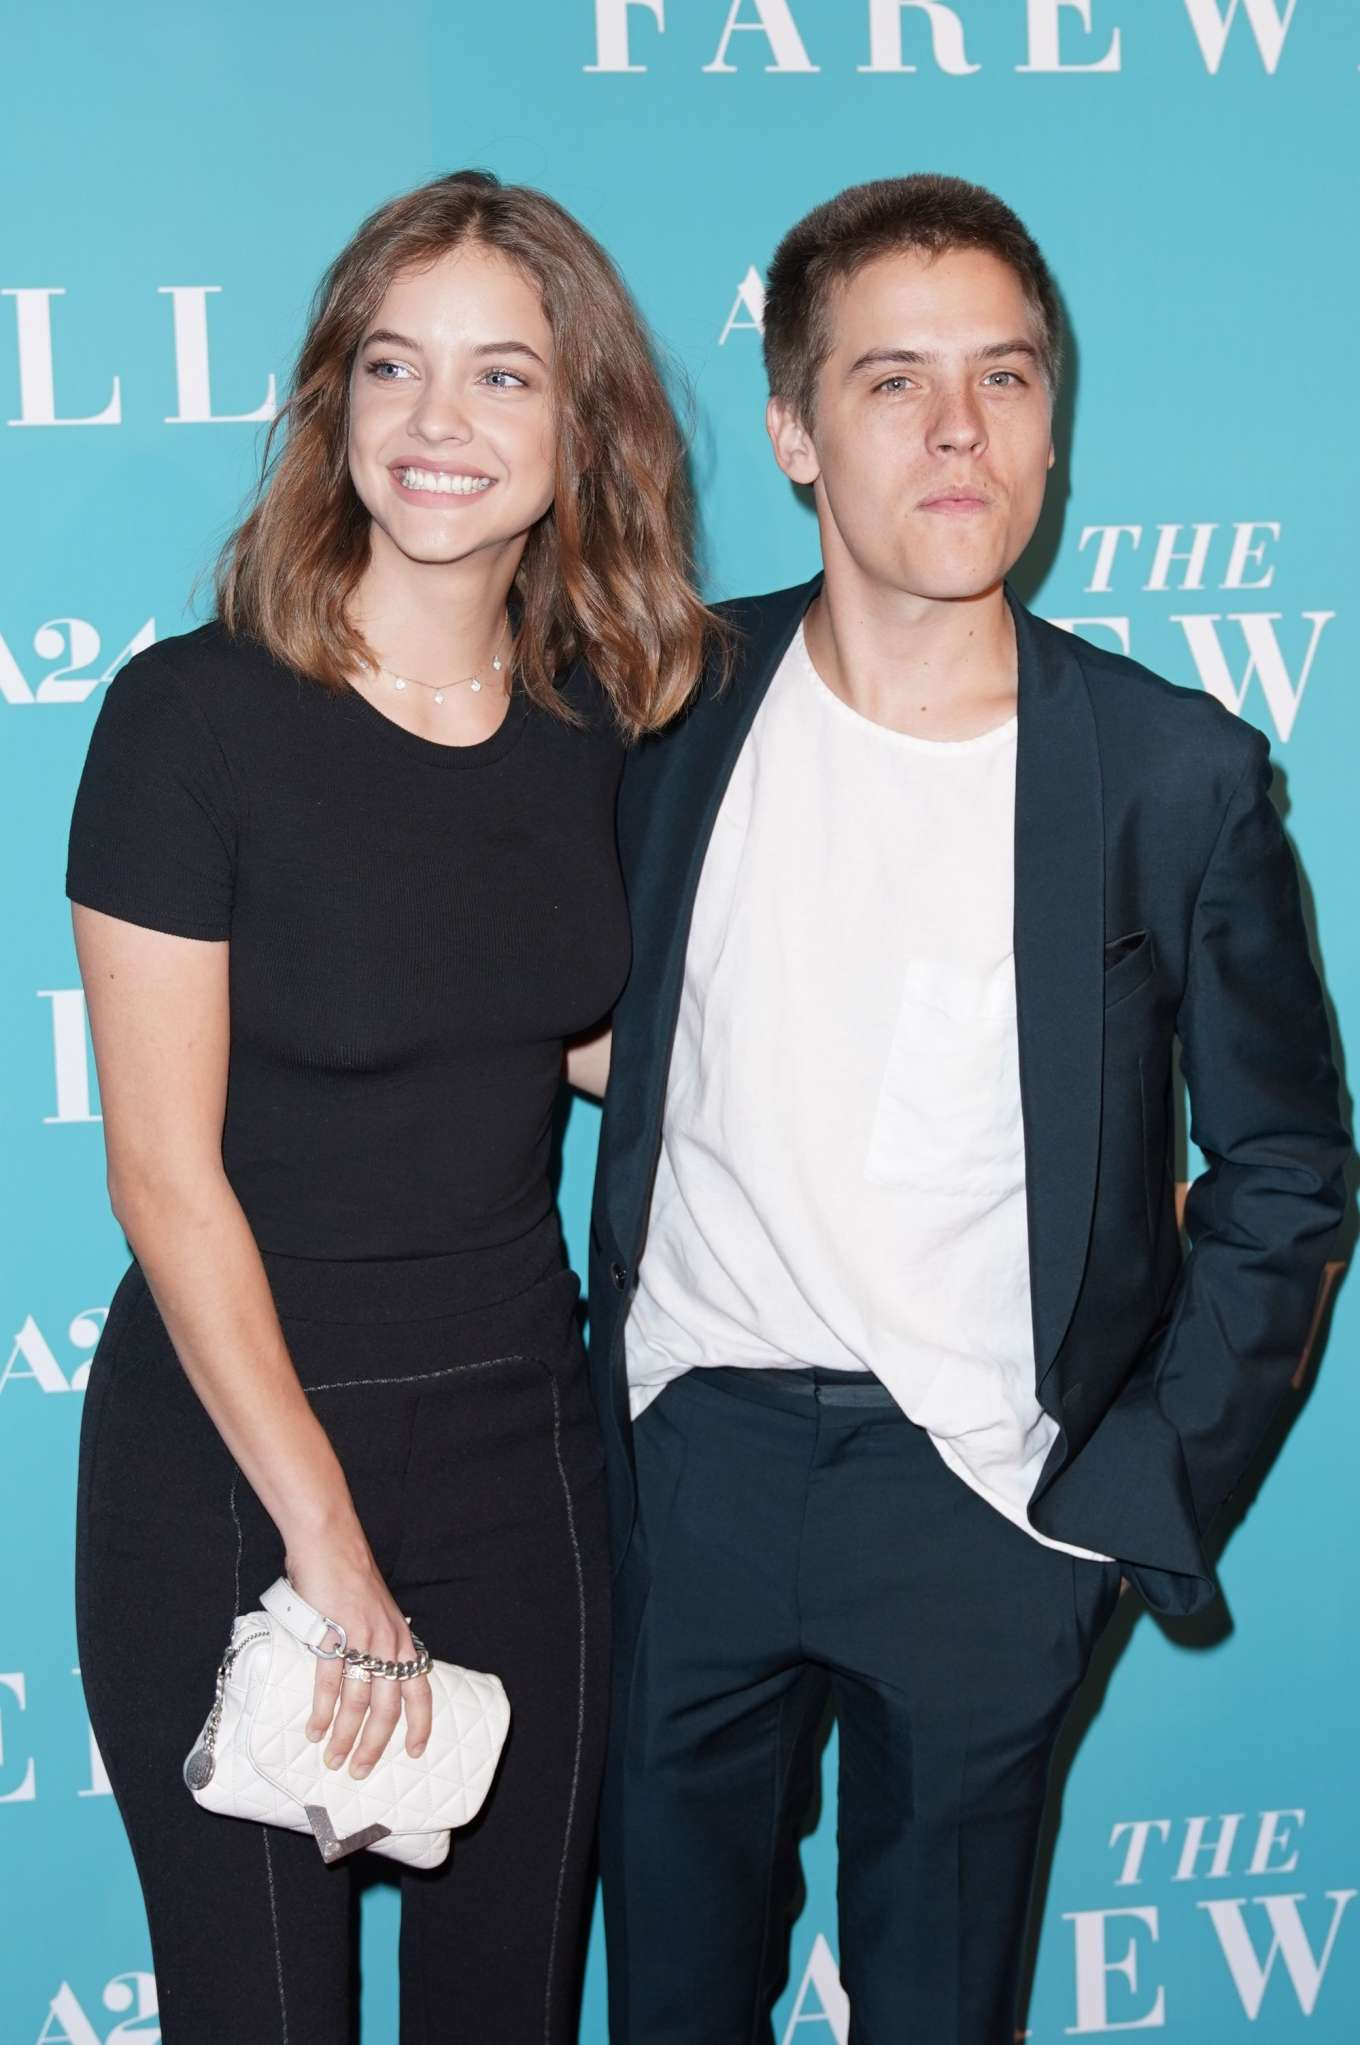 Barbara Palvin 2019 : Barbara Palvin and Dylan Sprouse – The Farewell Special Screening-03